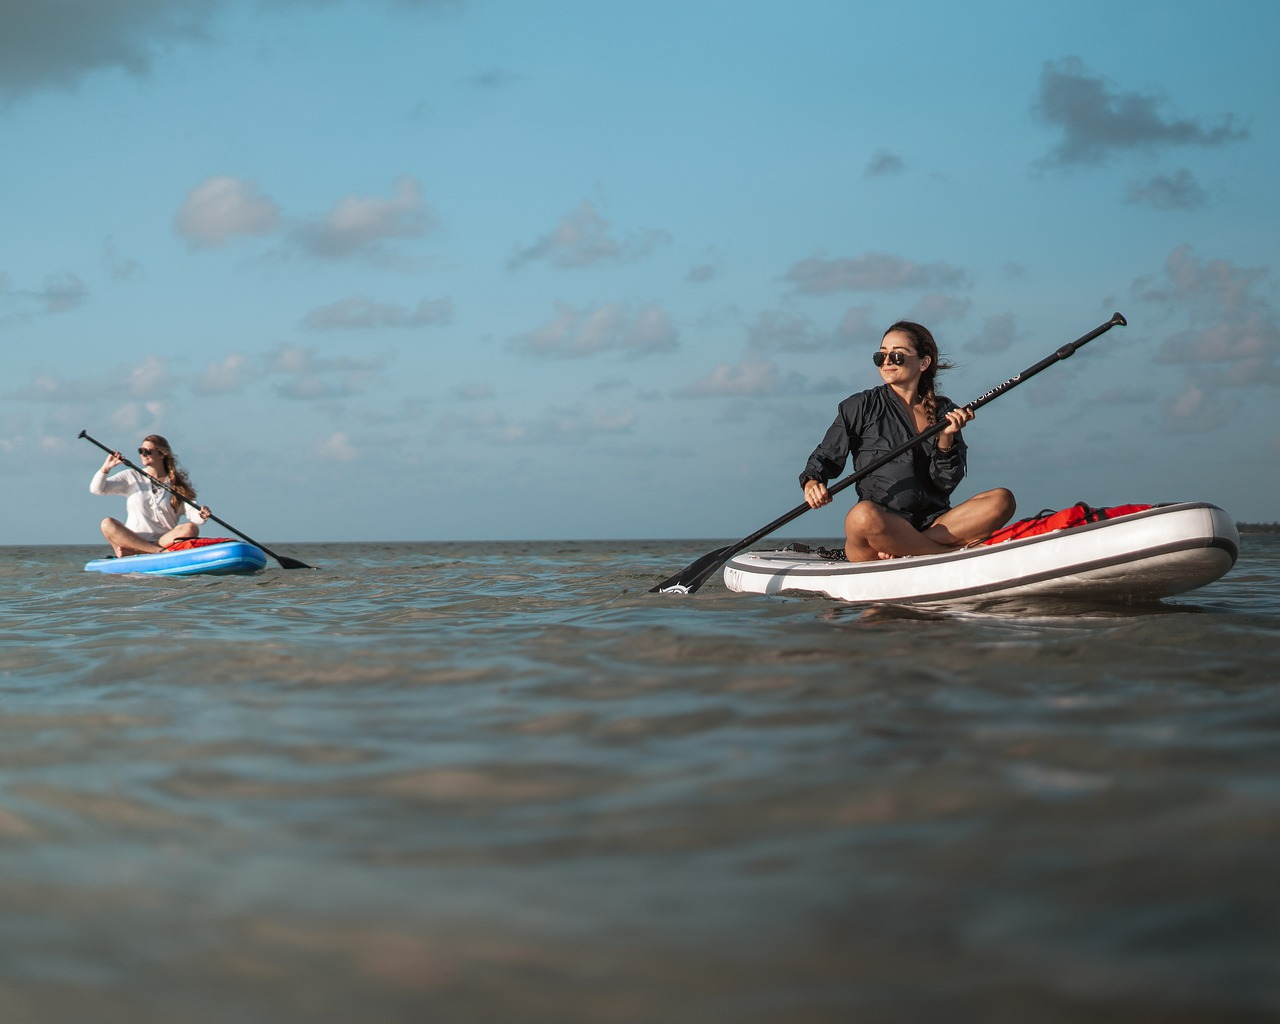 image of 2 women paddle boarding on the ocean